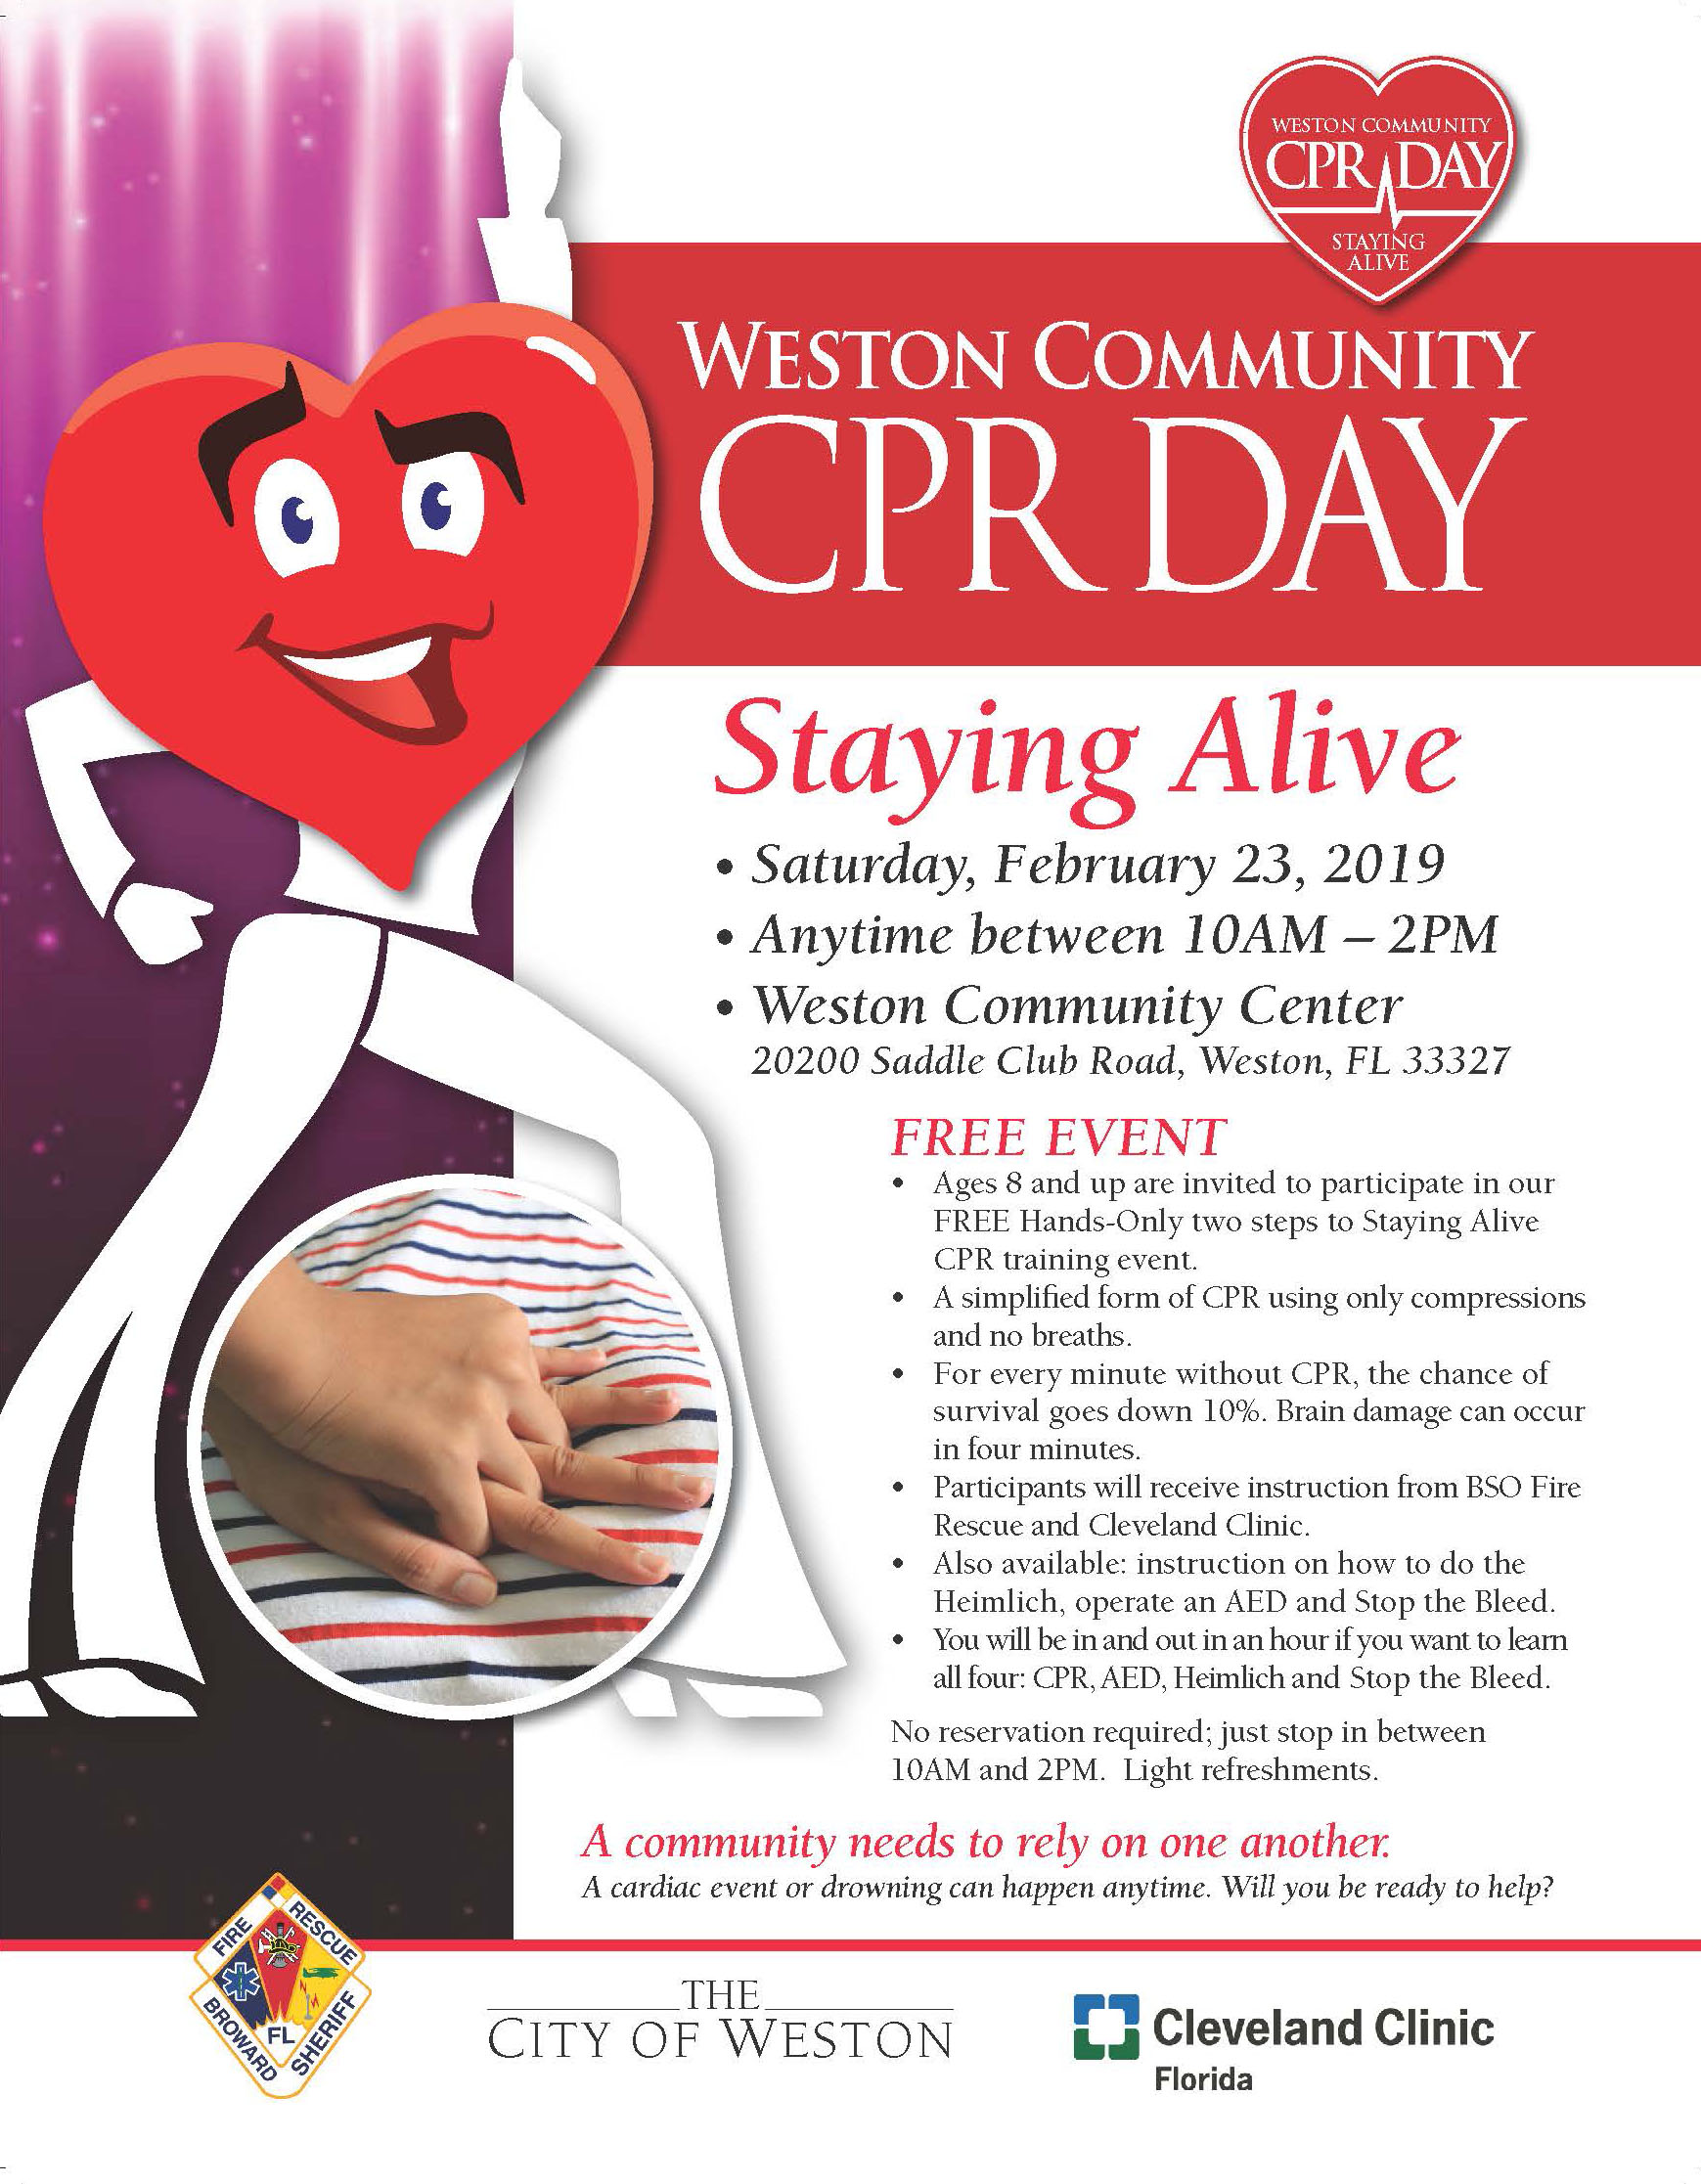 2019 Weston Community CPR Day Flyer for event on February 23, 2019